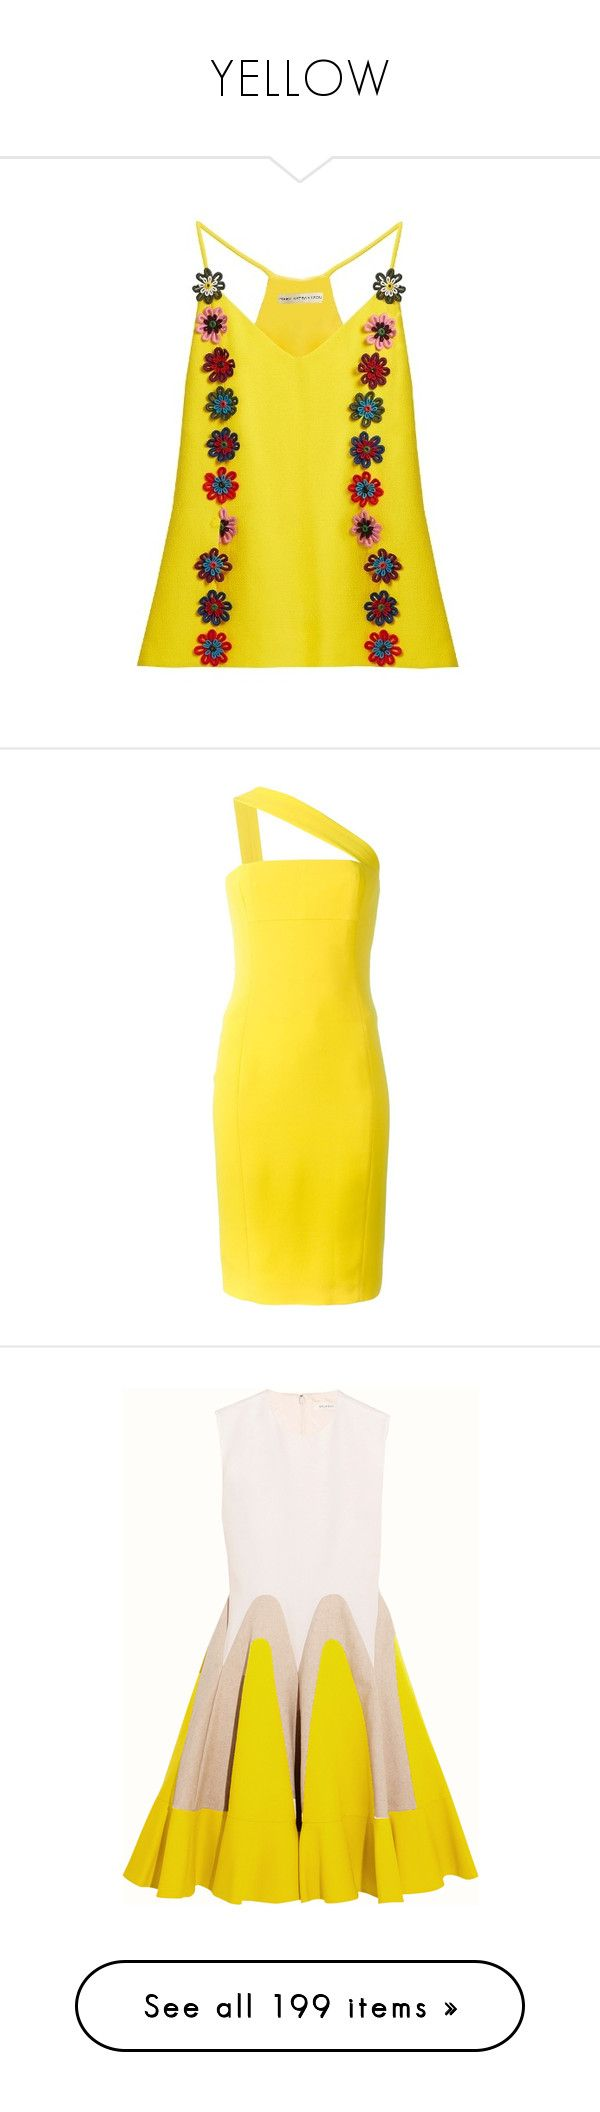 """""""YELLOW"""" by atamis ❤ liked on Polyvore featuring tops, yellow multi, yellow cami, lace camis, floral tank top, camisole tank top, lace camisole, dresses, yellow and one shoulder dress"""